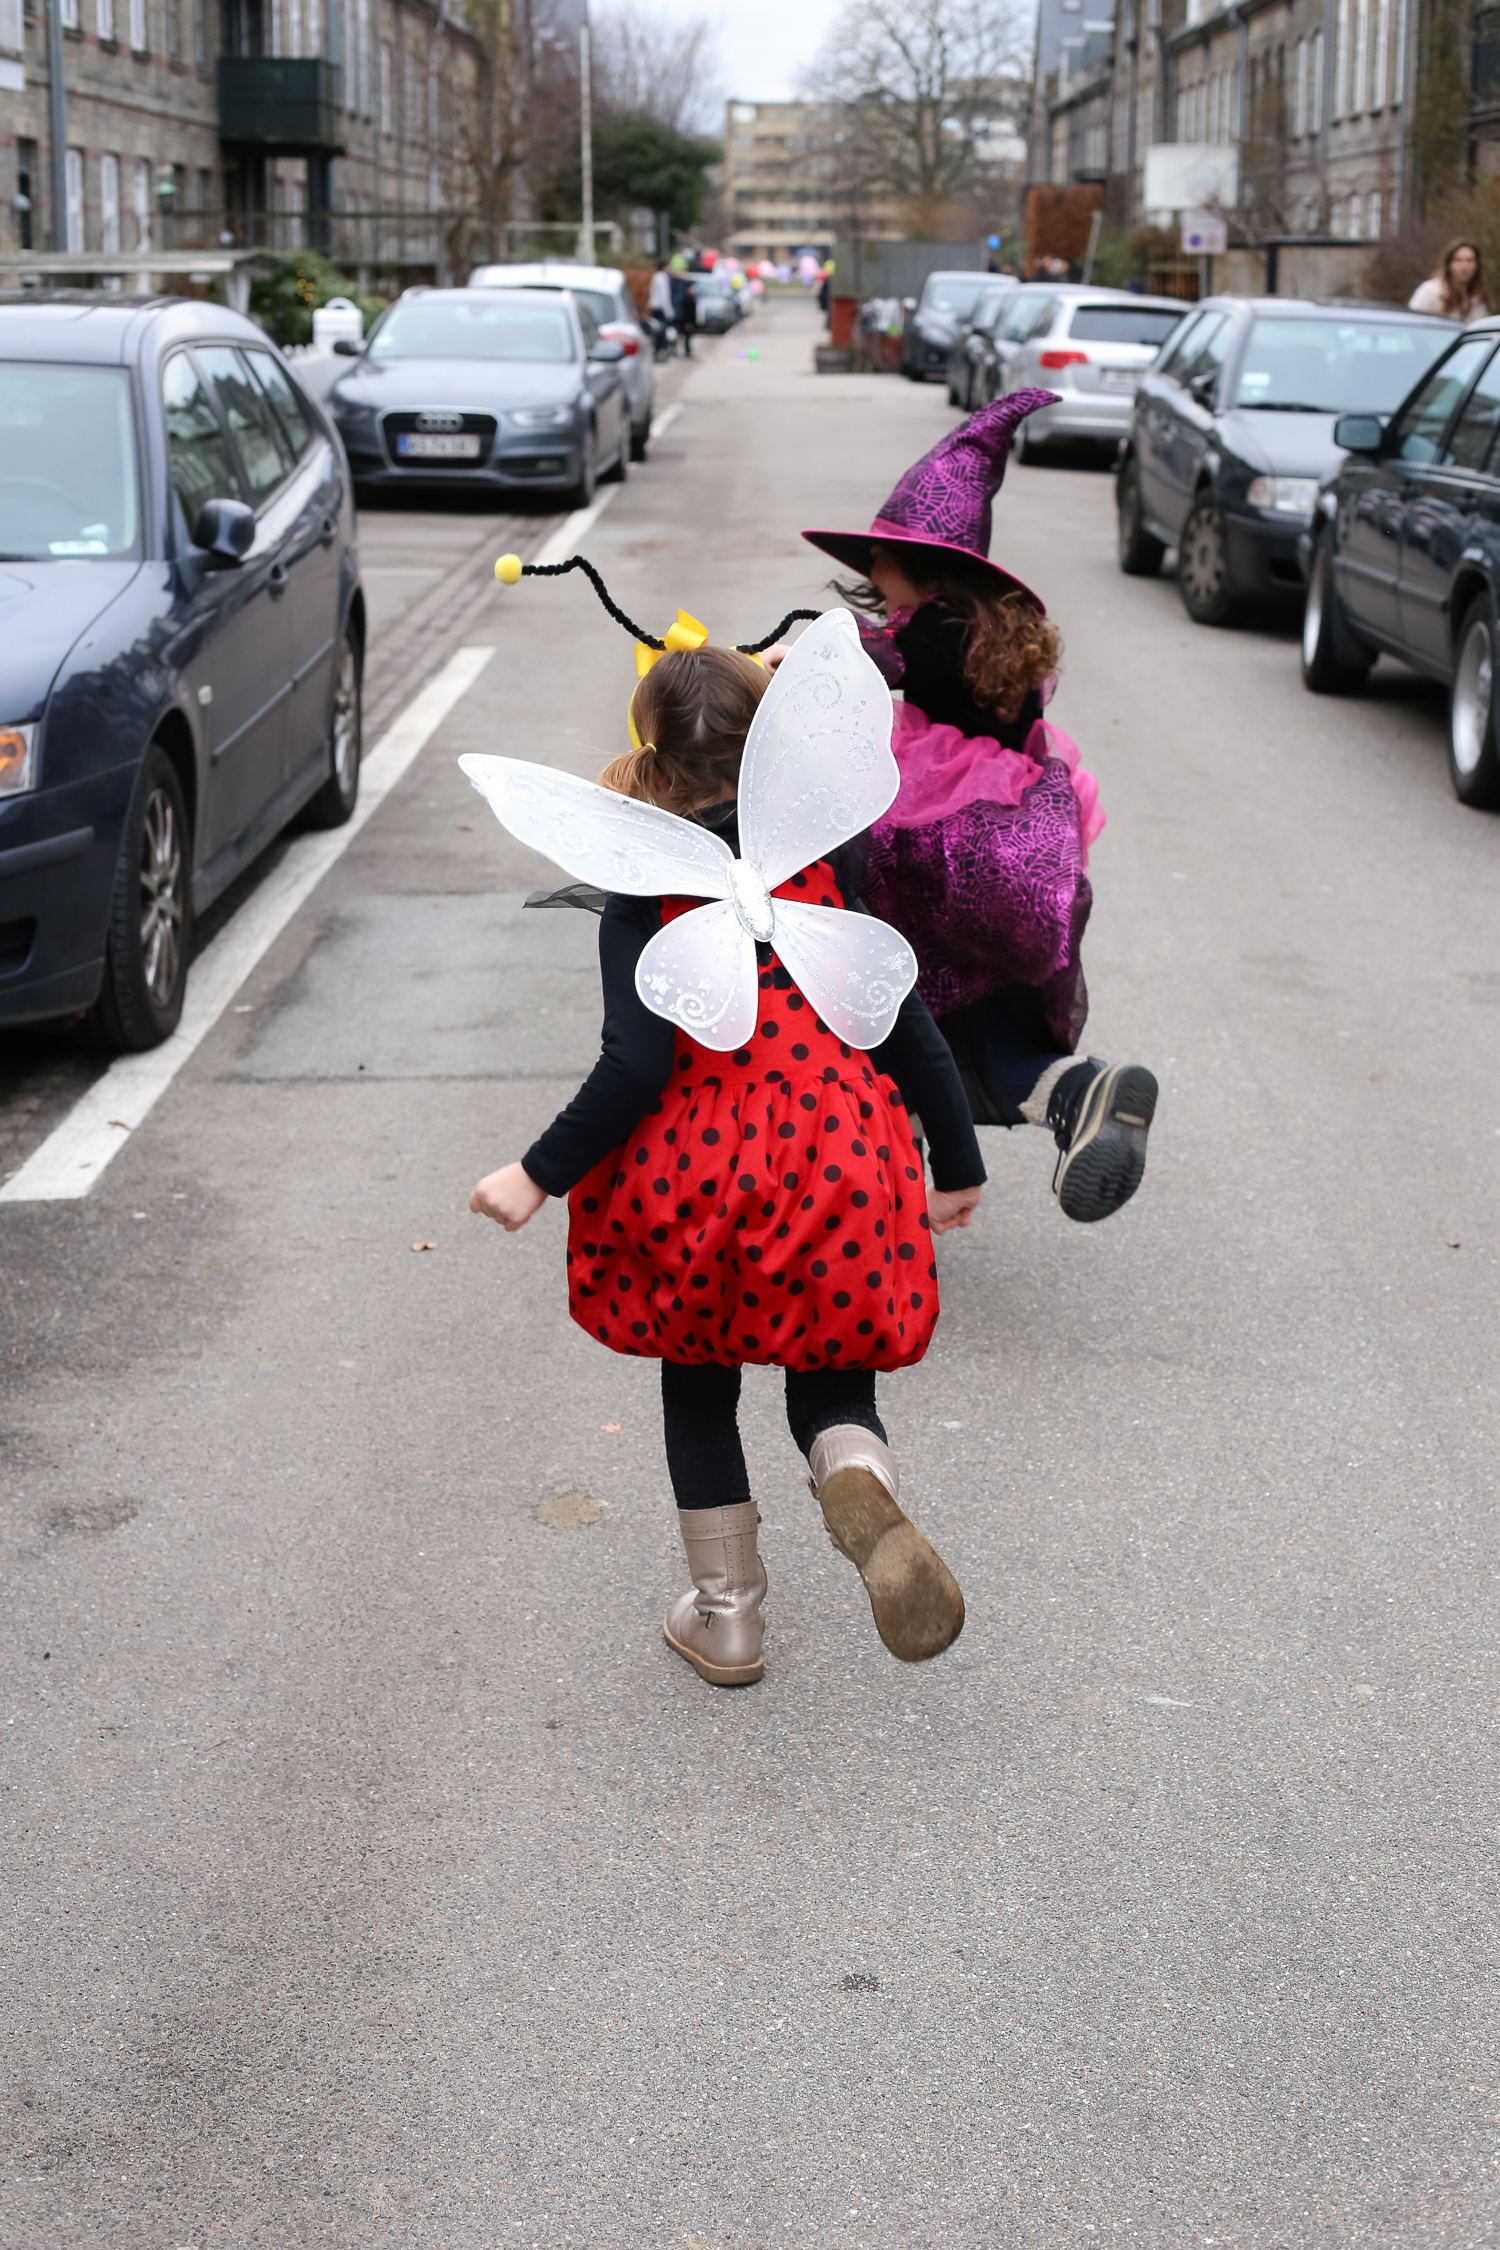 Celebrating Fastelavn, the equivalent tradition of carnival meets halloween meets Mardi Gras in Denmark